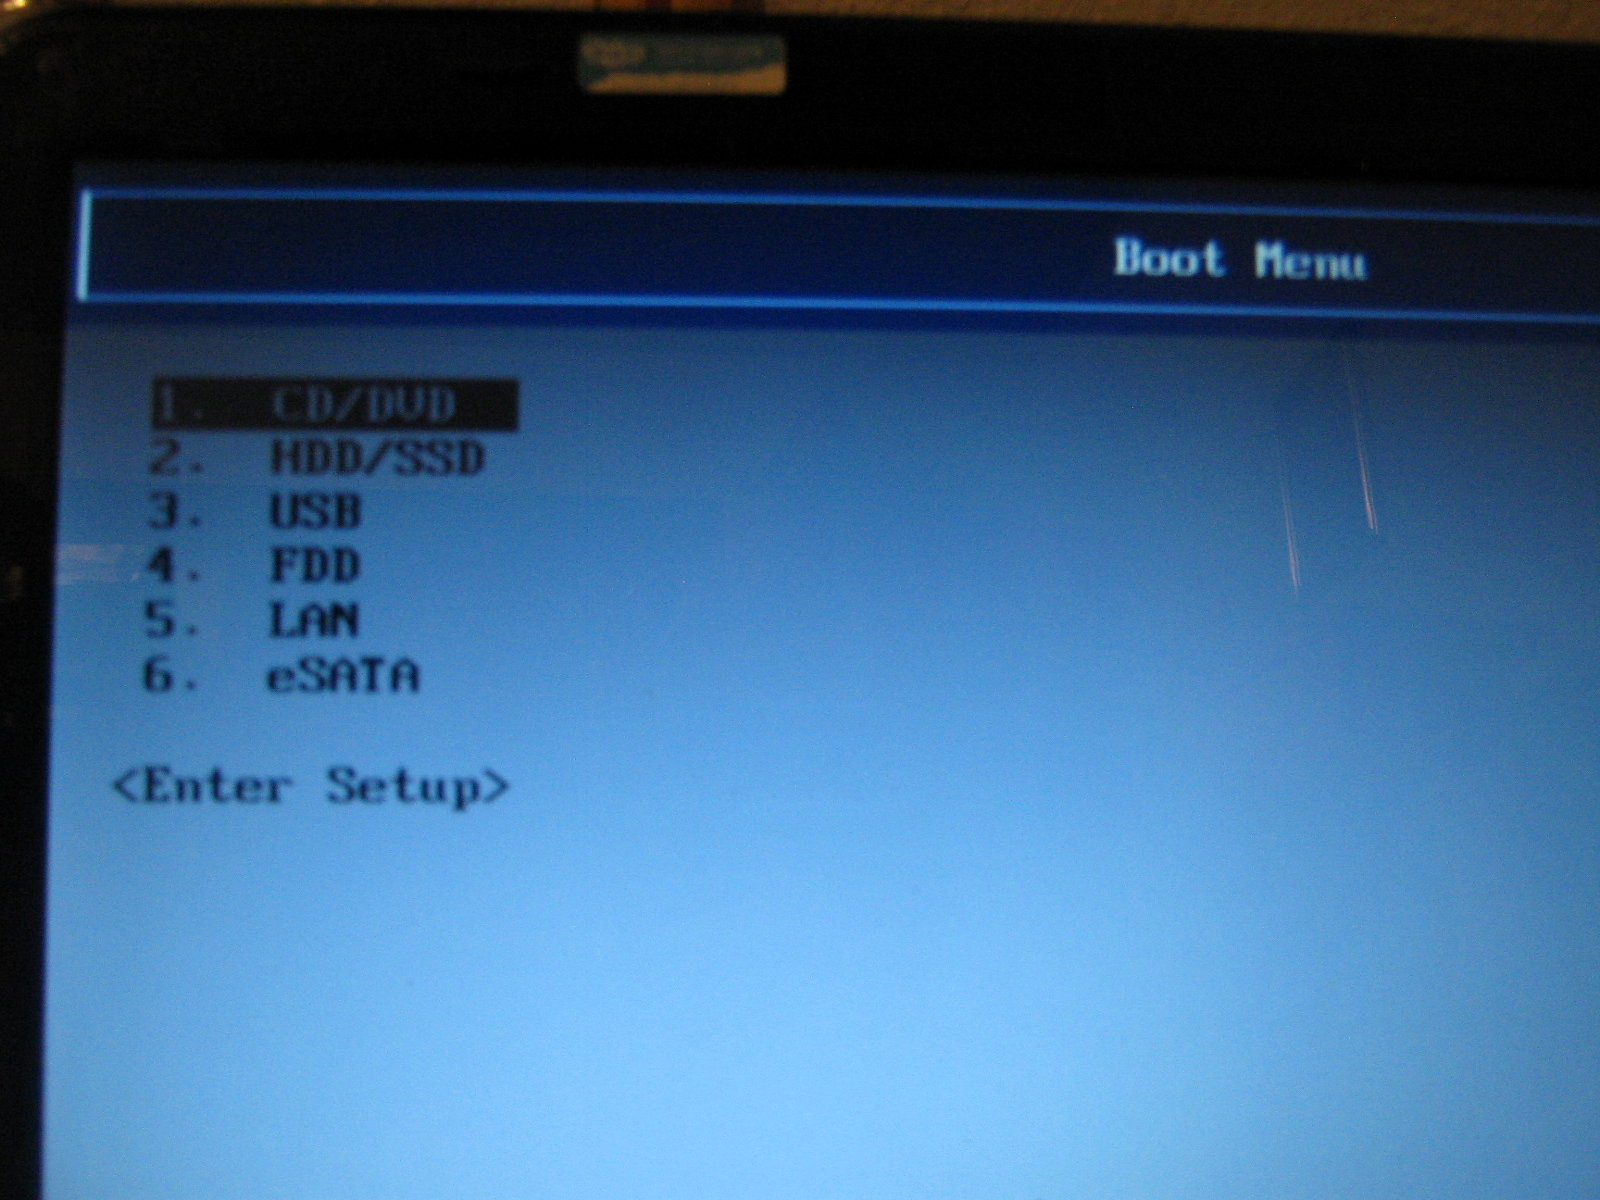 bootable device